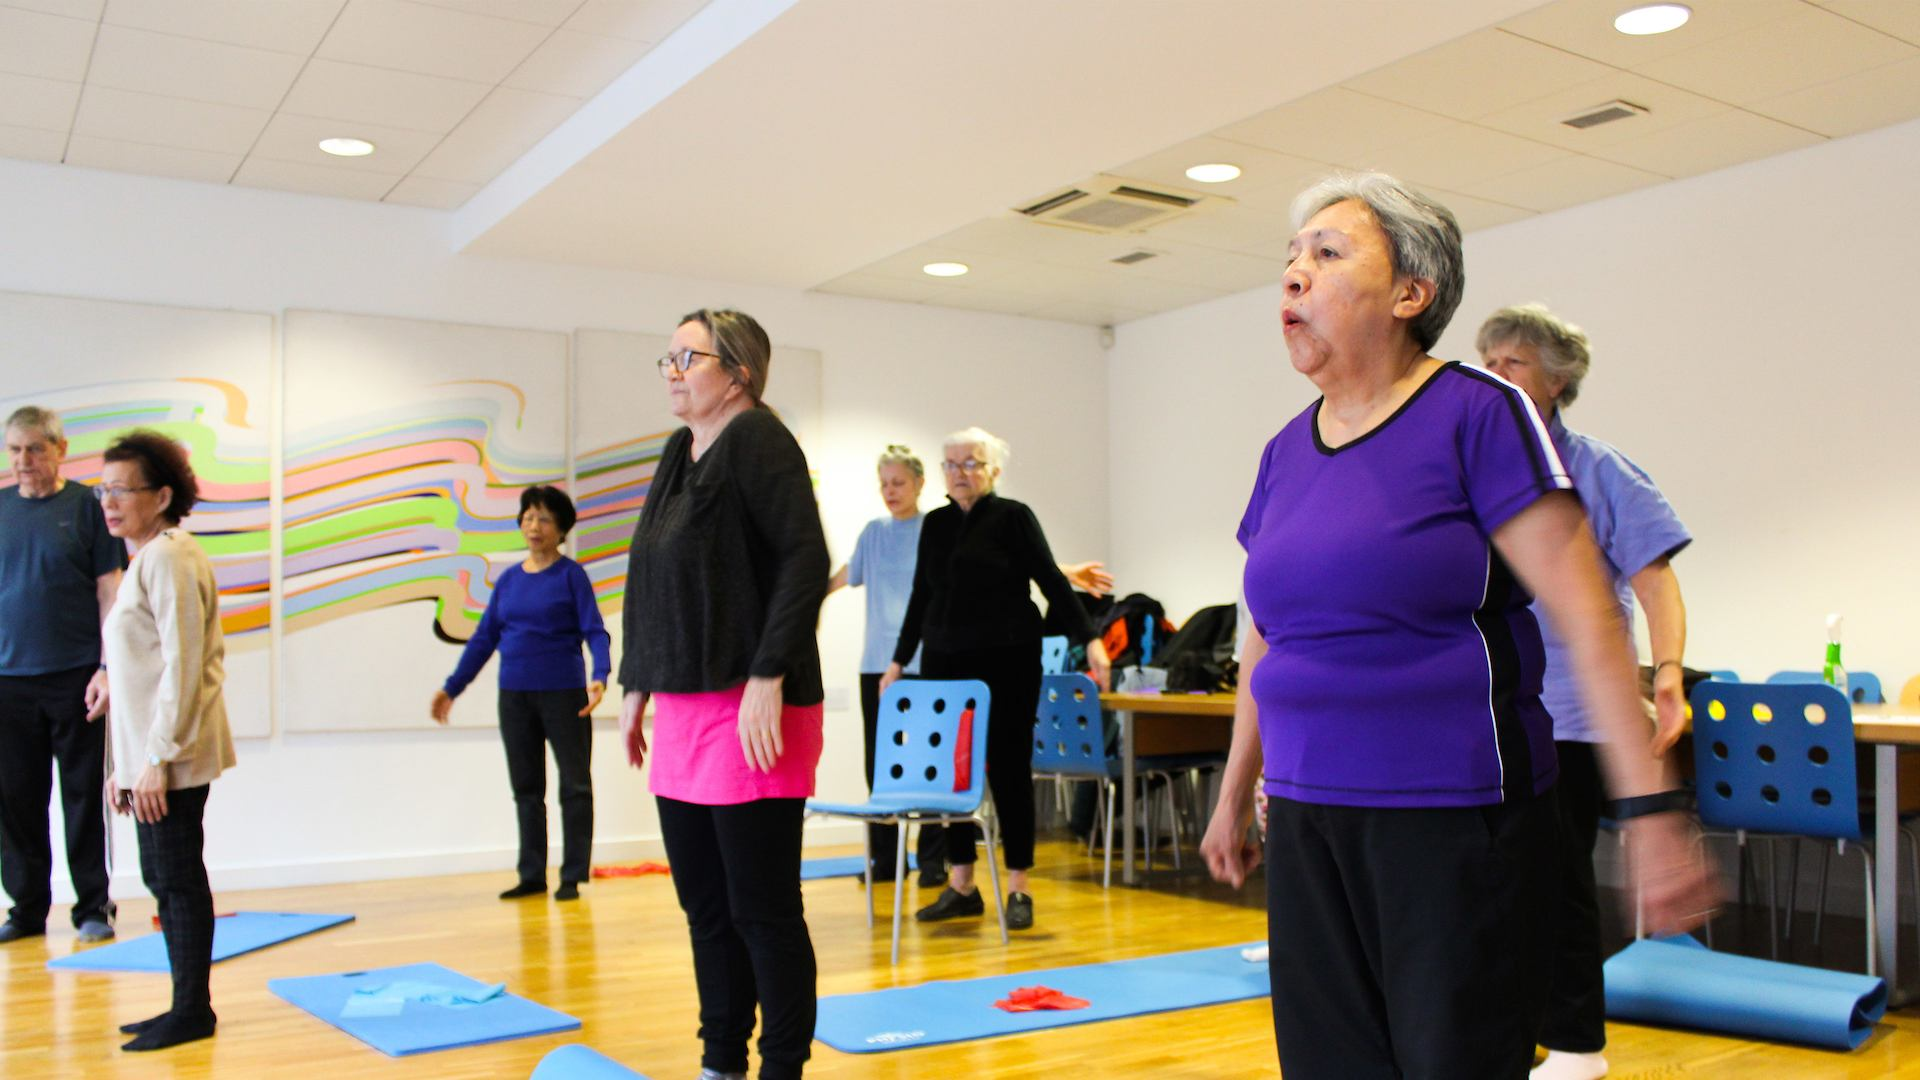 Older people in yoga class